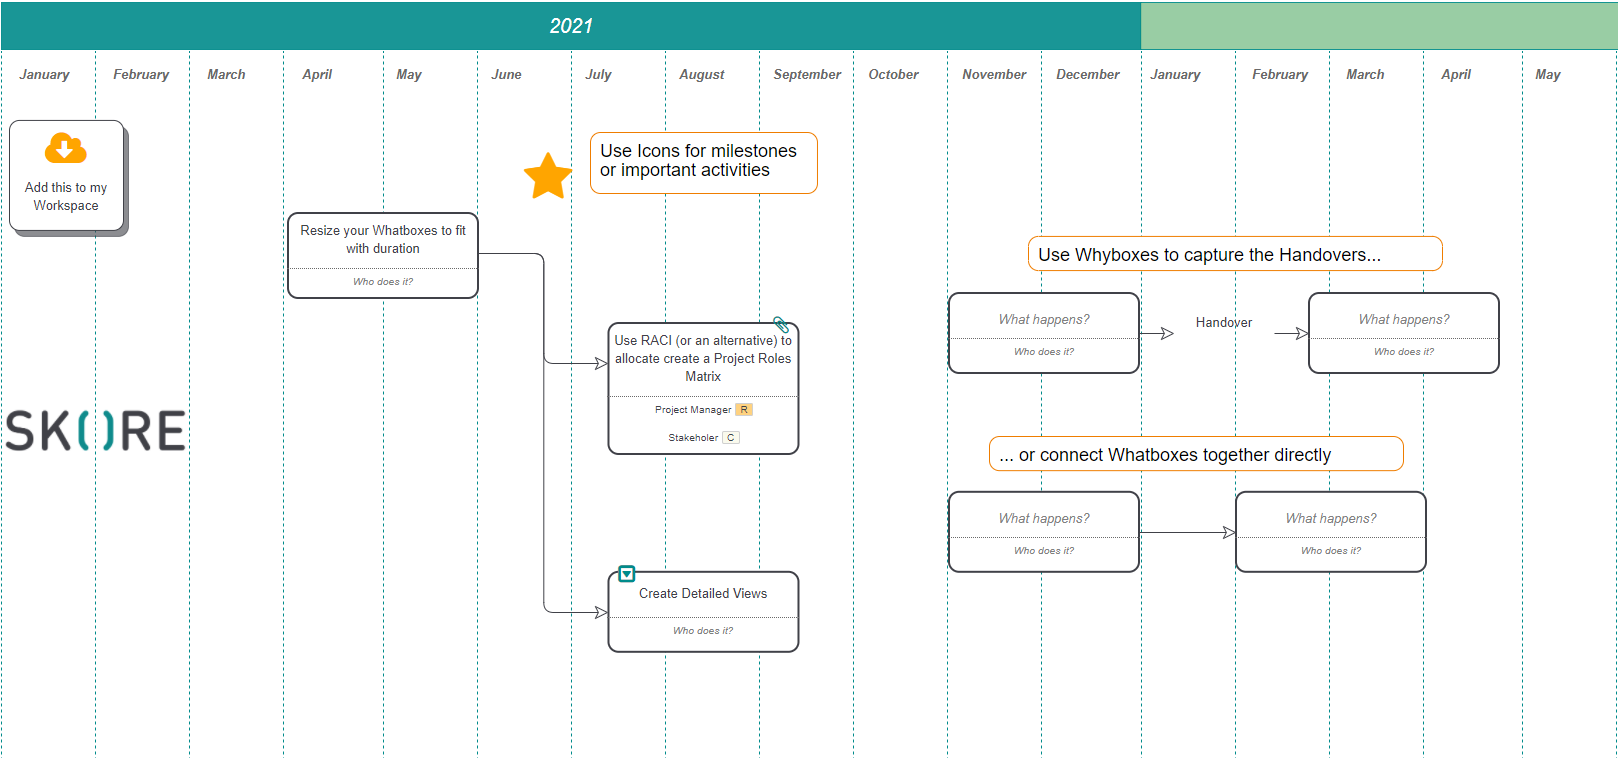 Create a Timeline View of your Process